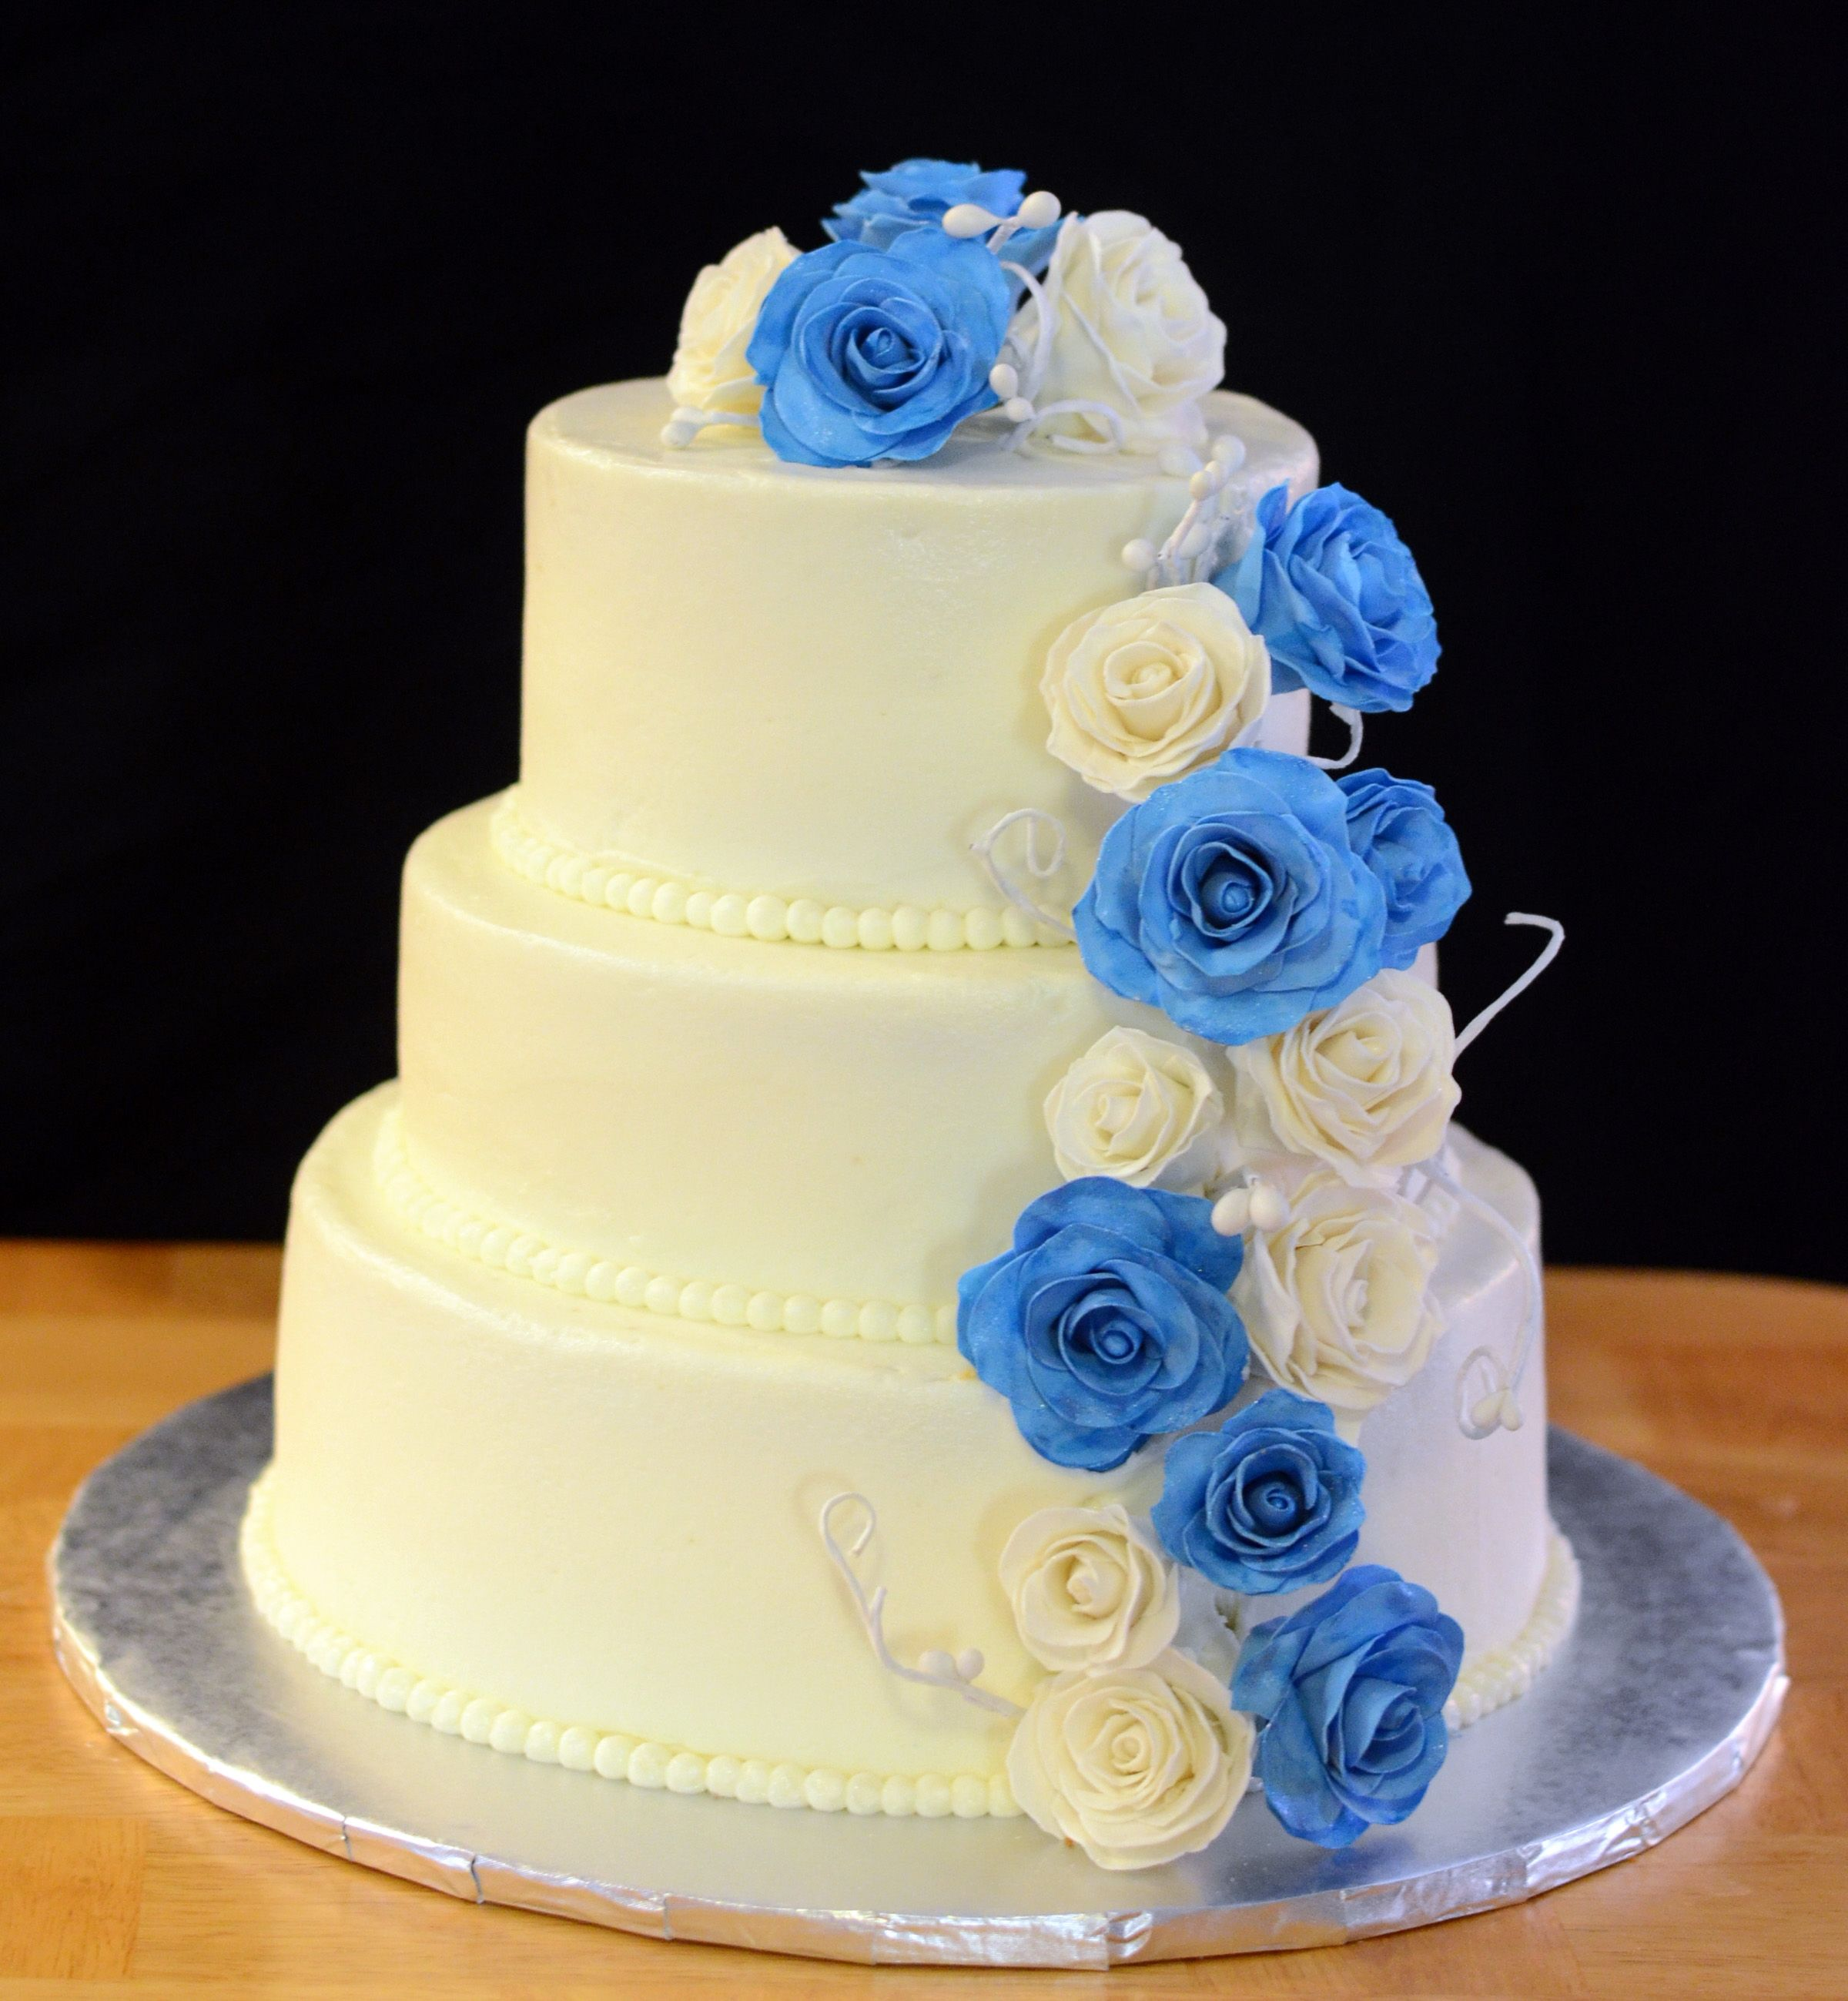 Cake Blue And White Roses